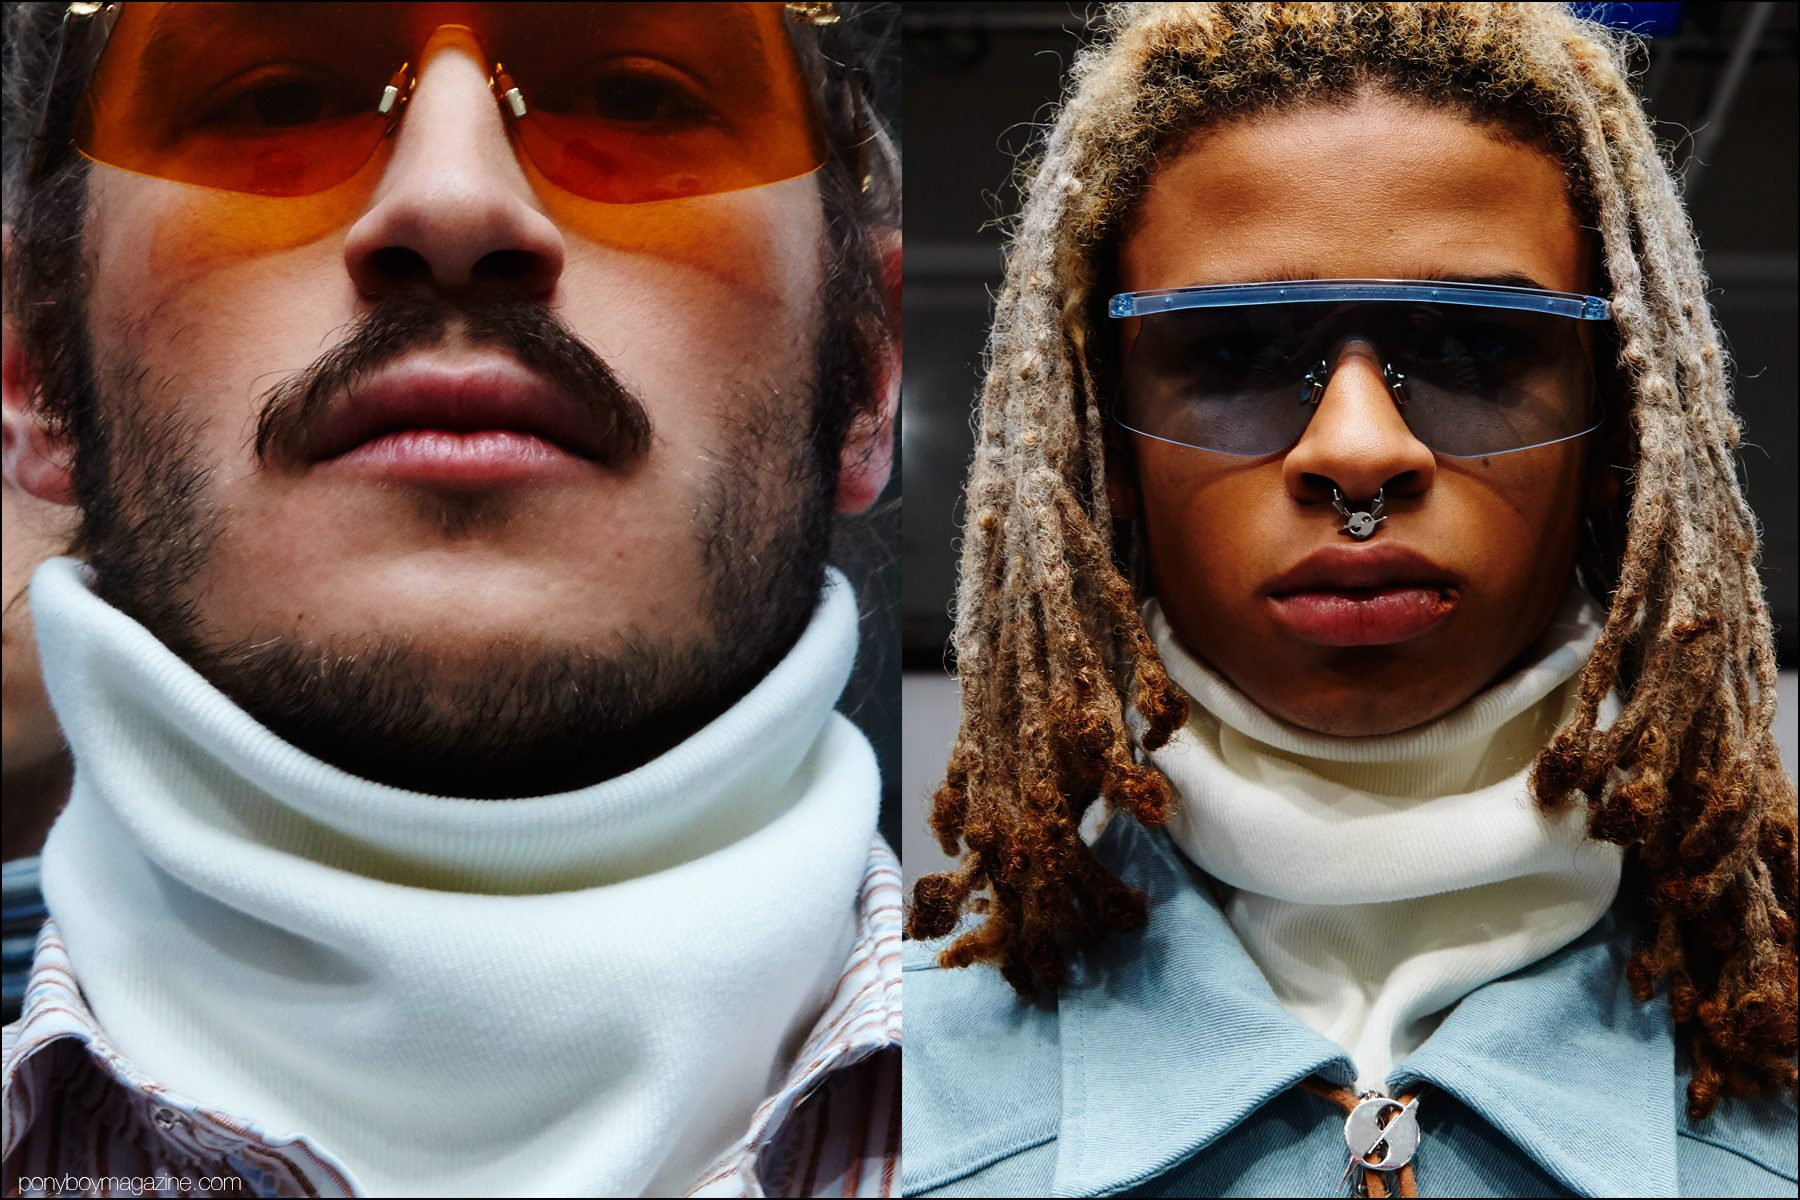 Sleek sunglasses photographed at Gyspy Sport F/W16 menswear presentation. Photography by Alexander Thompson for Ponyboy magazine NY.